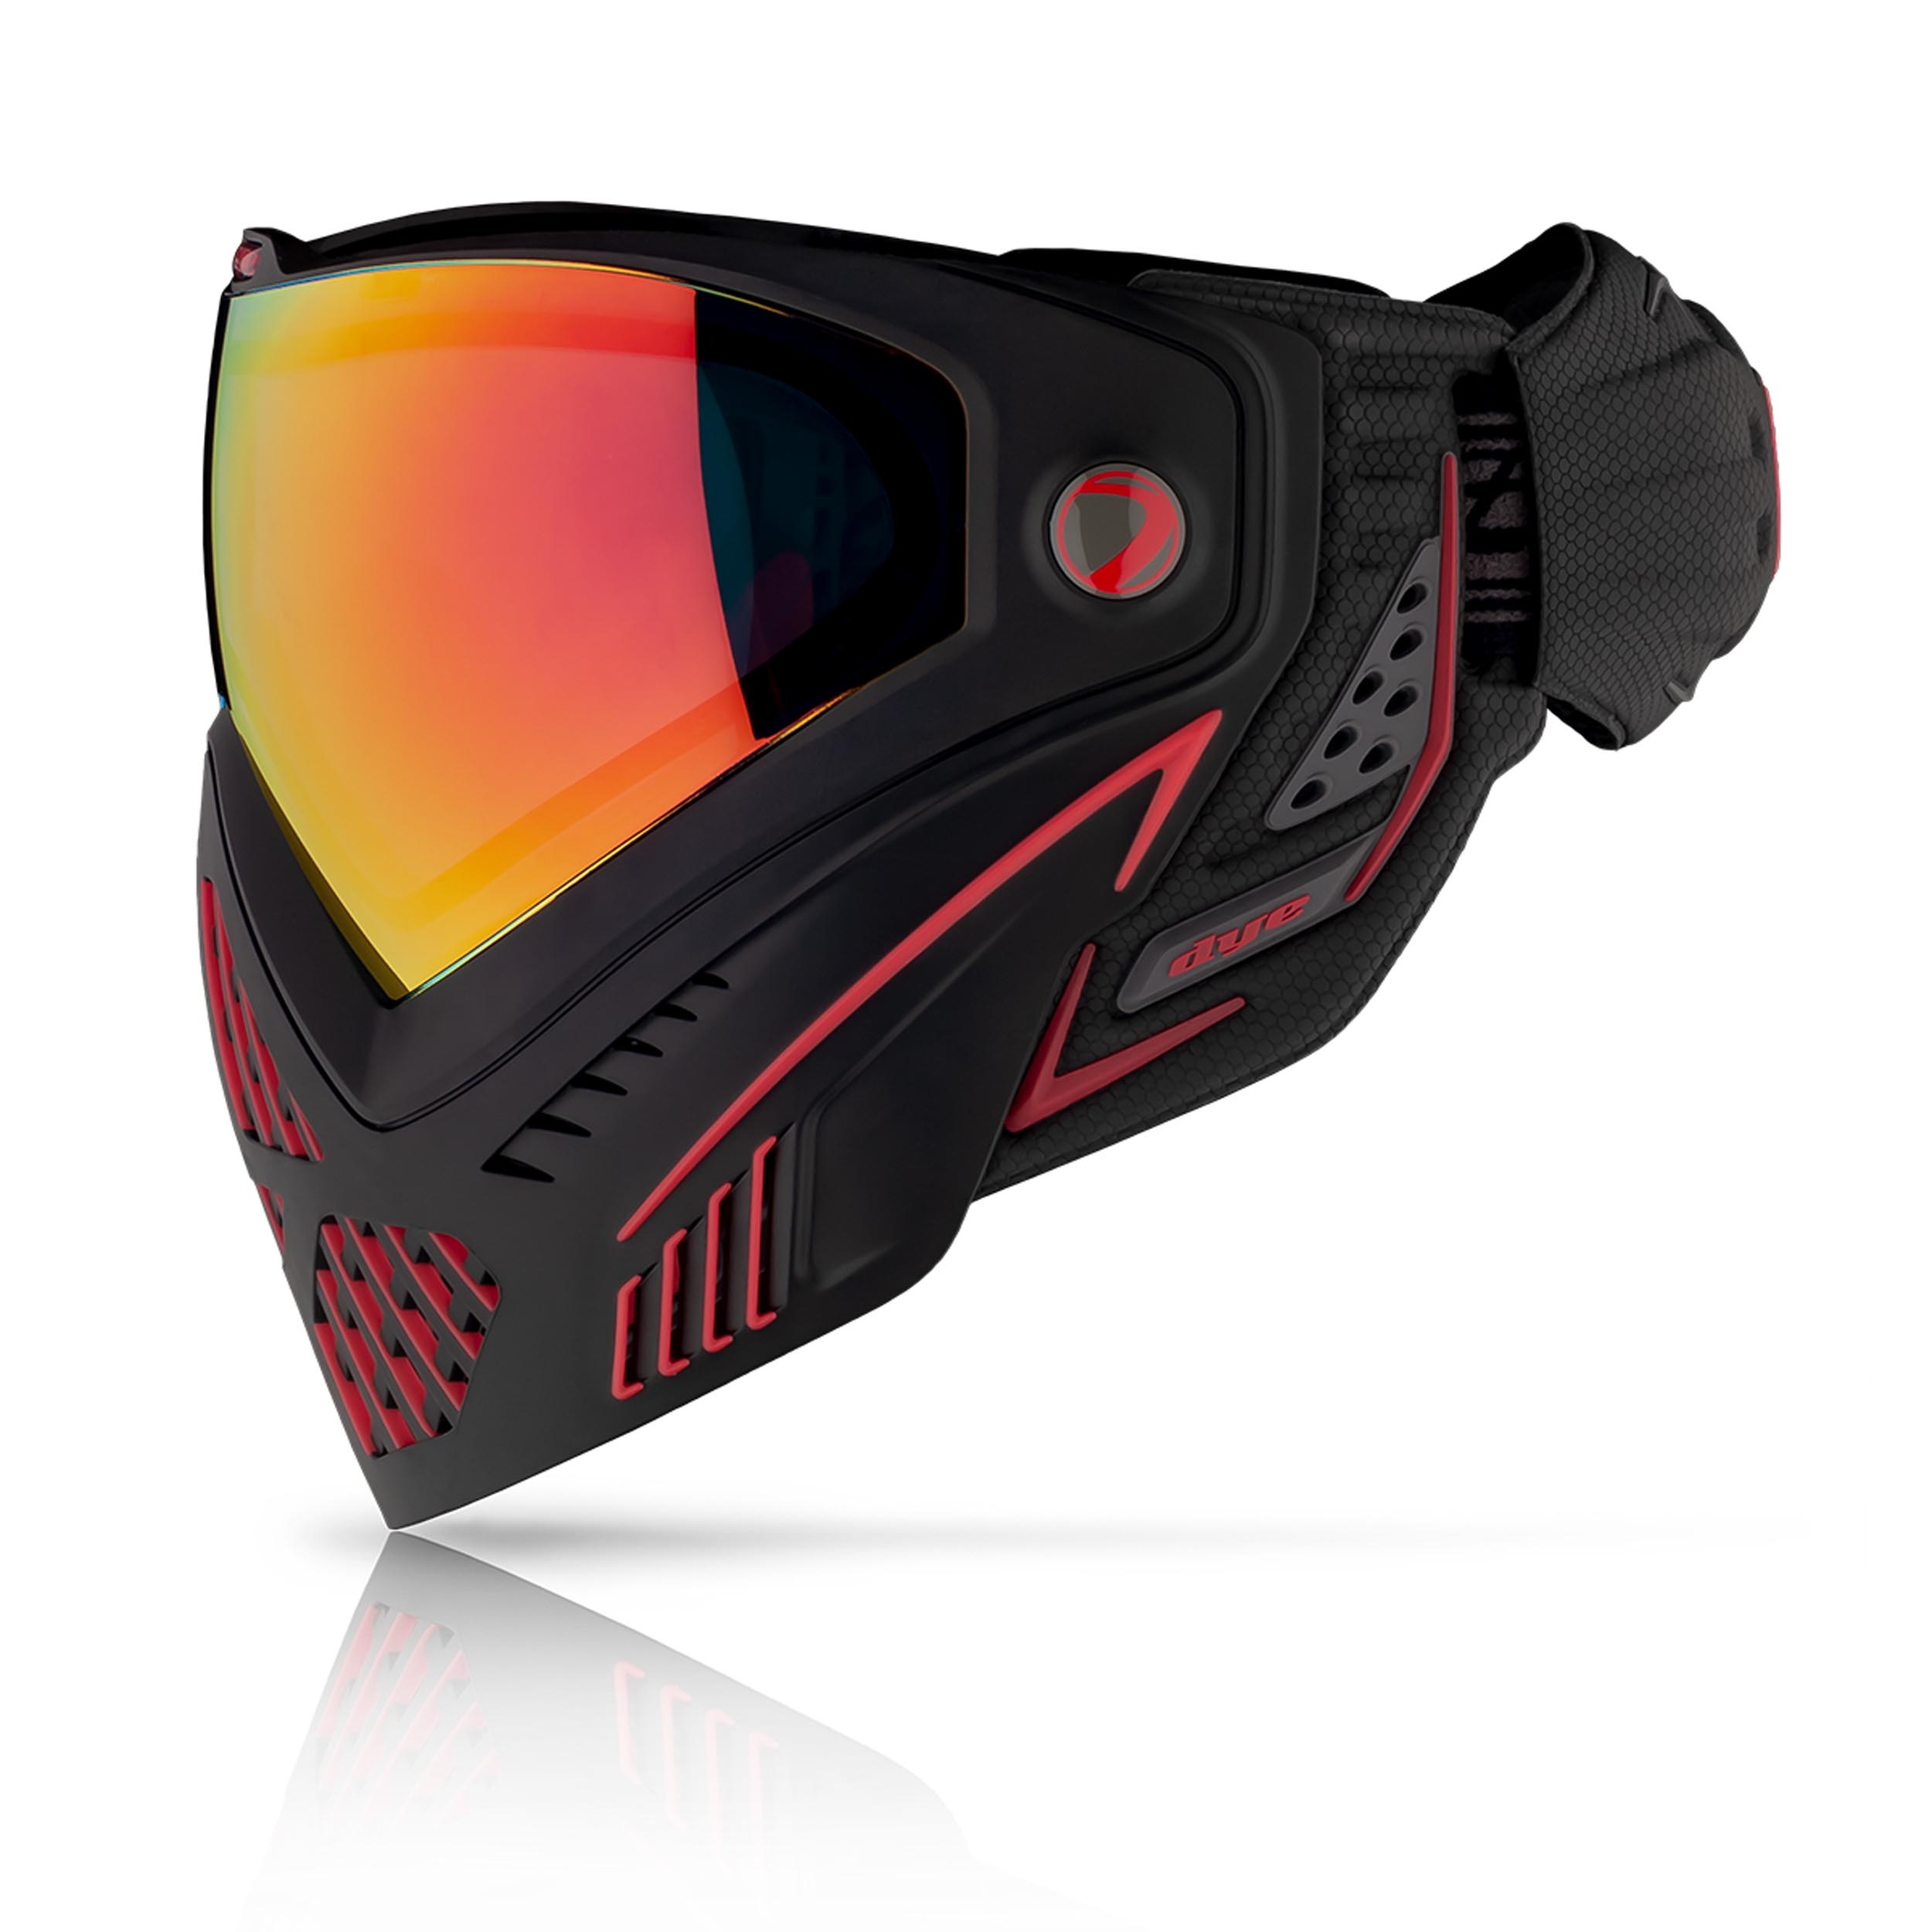 MAS471-2 Dye I5 thermal goggle Onyx Black Gold 2.0 - MAS473